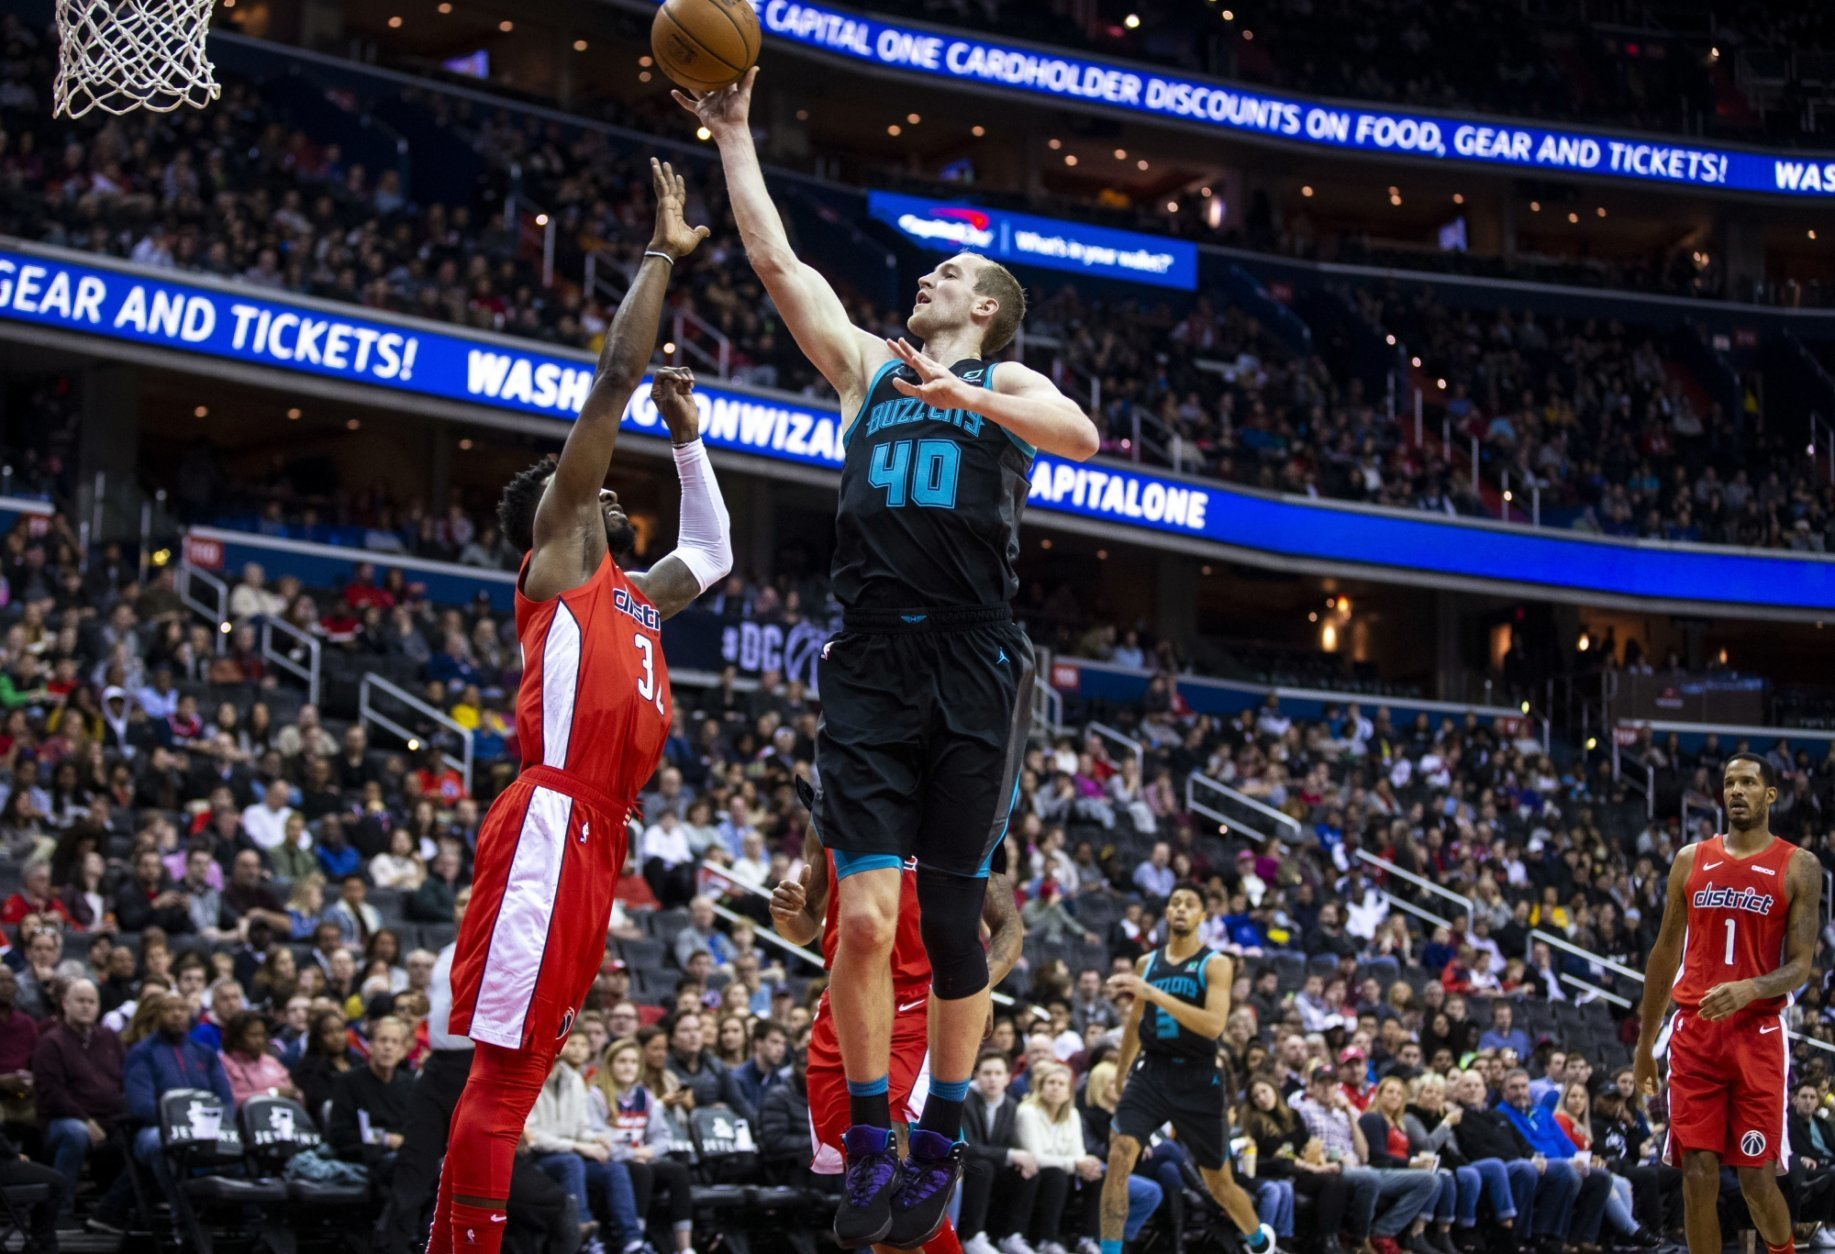 Charlotte Hornets center Cody Zeller (40) shoots over Washington Wizards forward Jeff Green (32) during the first half of an NBA basketball game Saturday, Dec. 29, 2018, in Washington. (AP Photo/Al Drago)